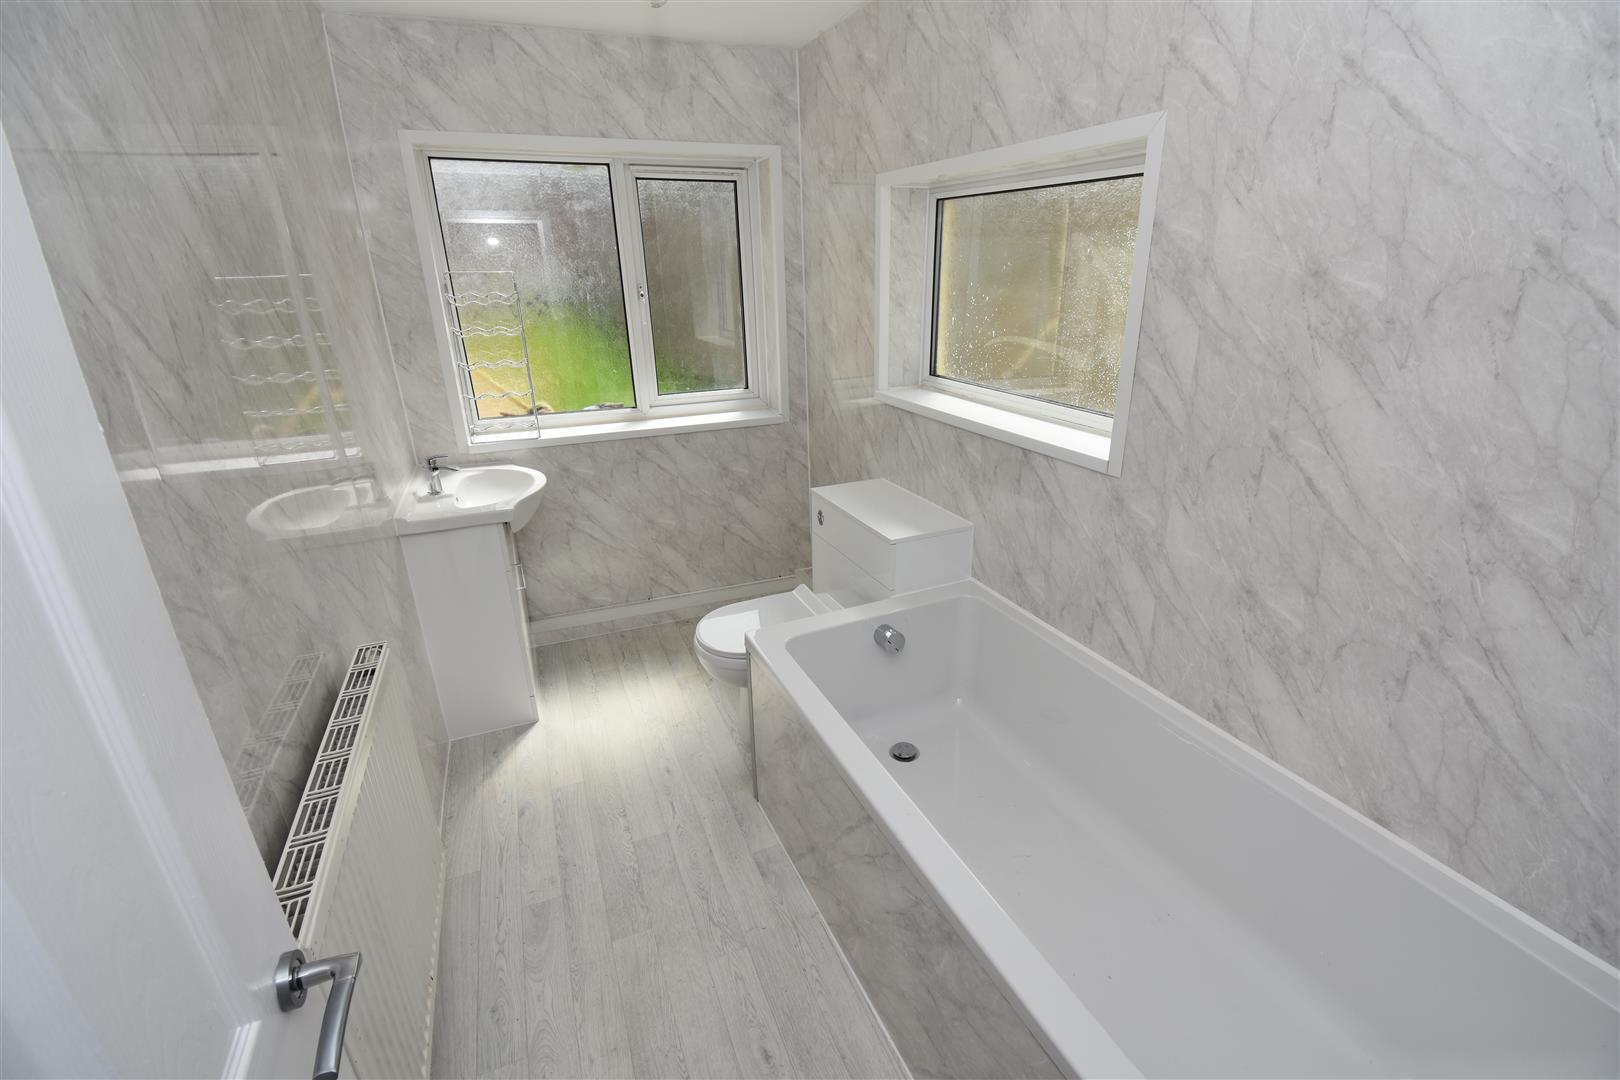 3 bed house for sale in Asquith Road, Ward End, Birmingham 7